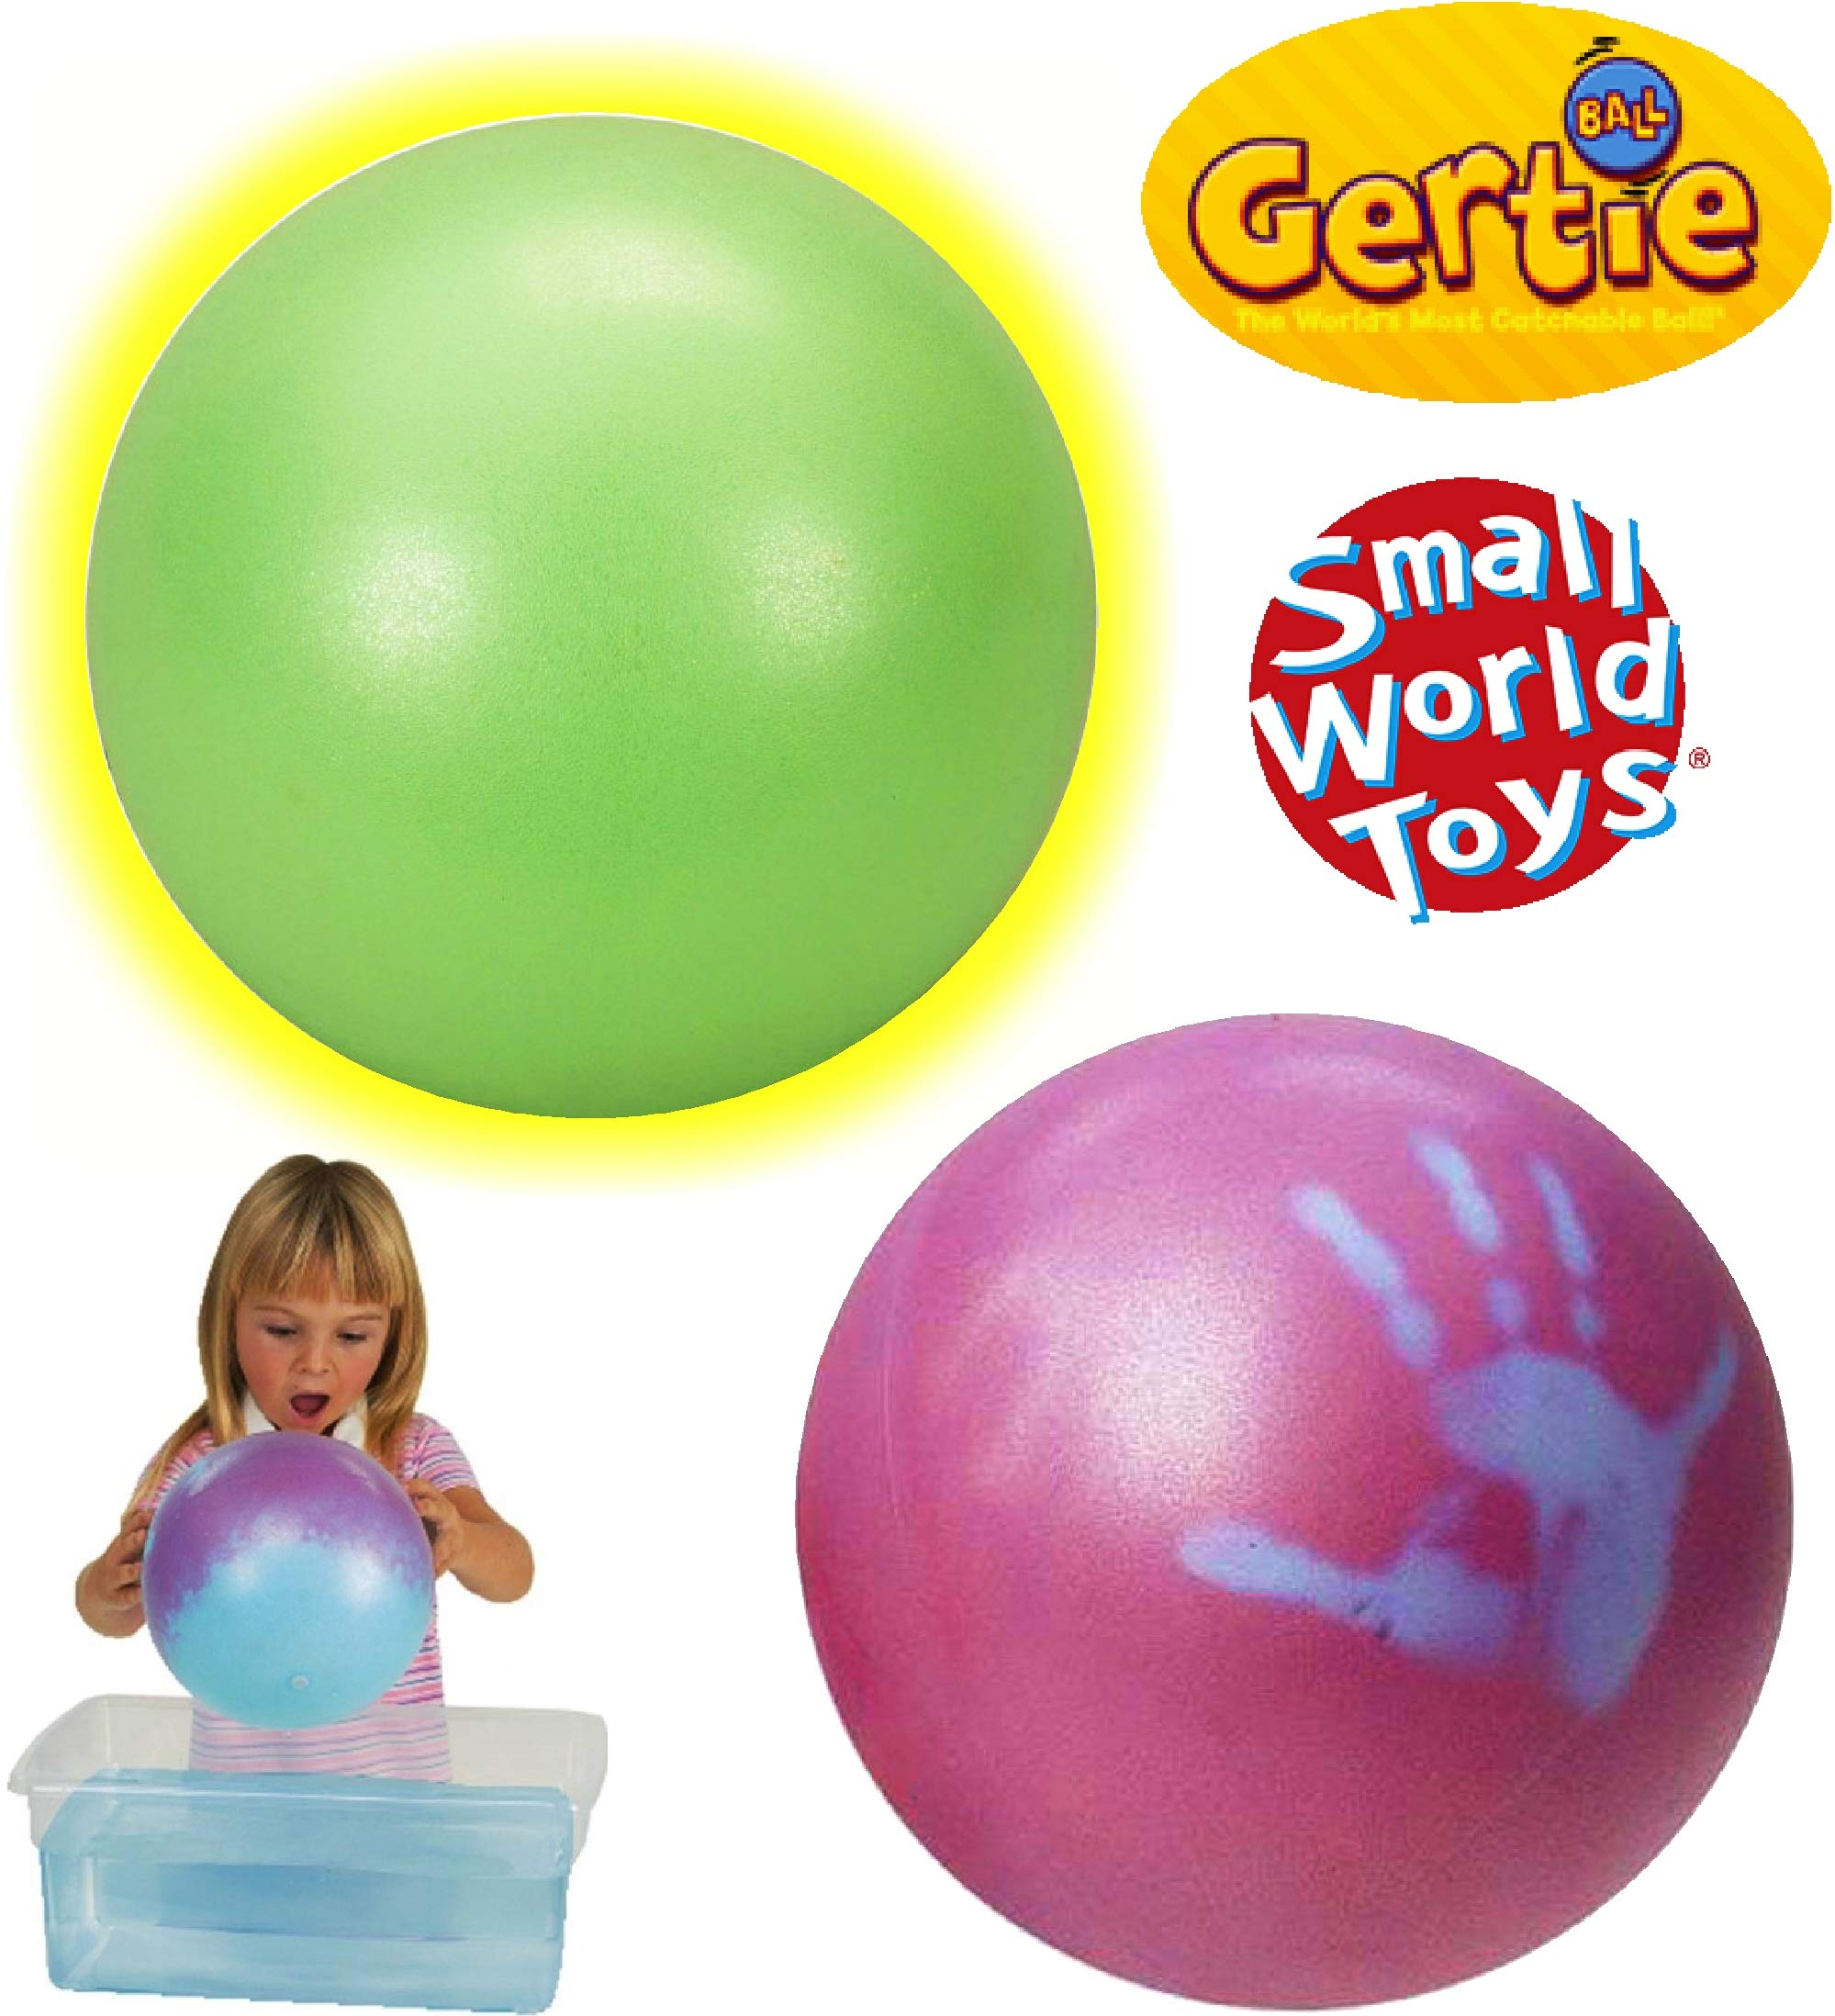 Small World Toys Gertie Balls Glow in The Dark & Magic Gertie Ball Gift Set Bundle - 2 Pack